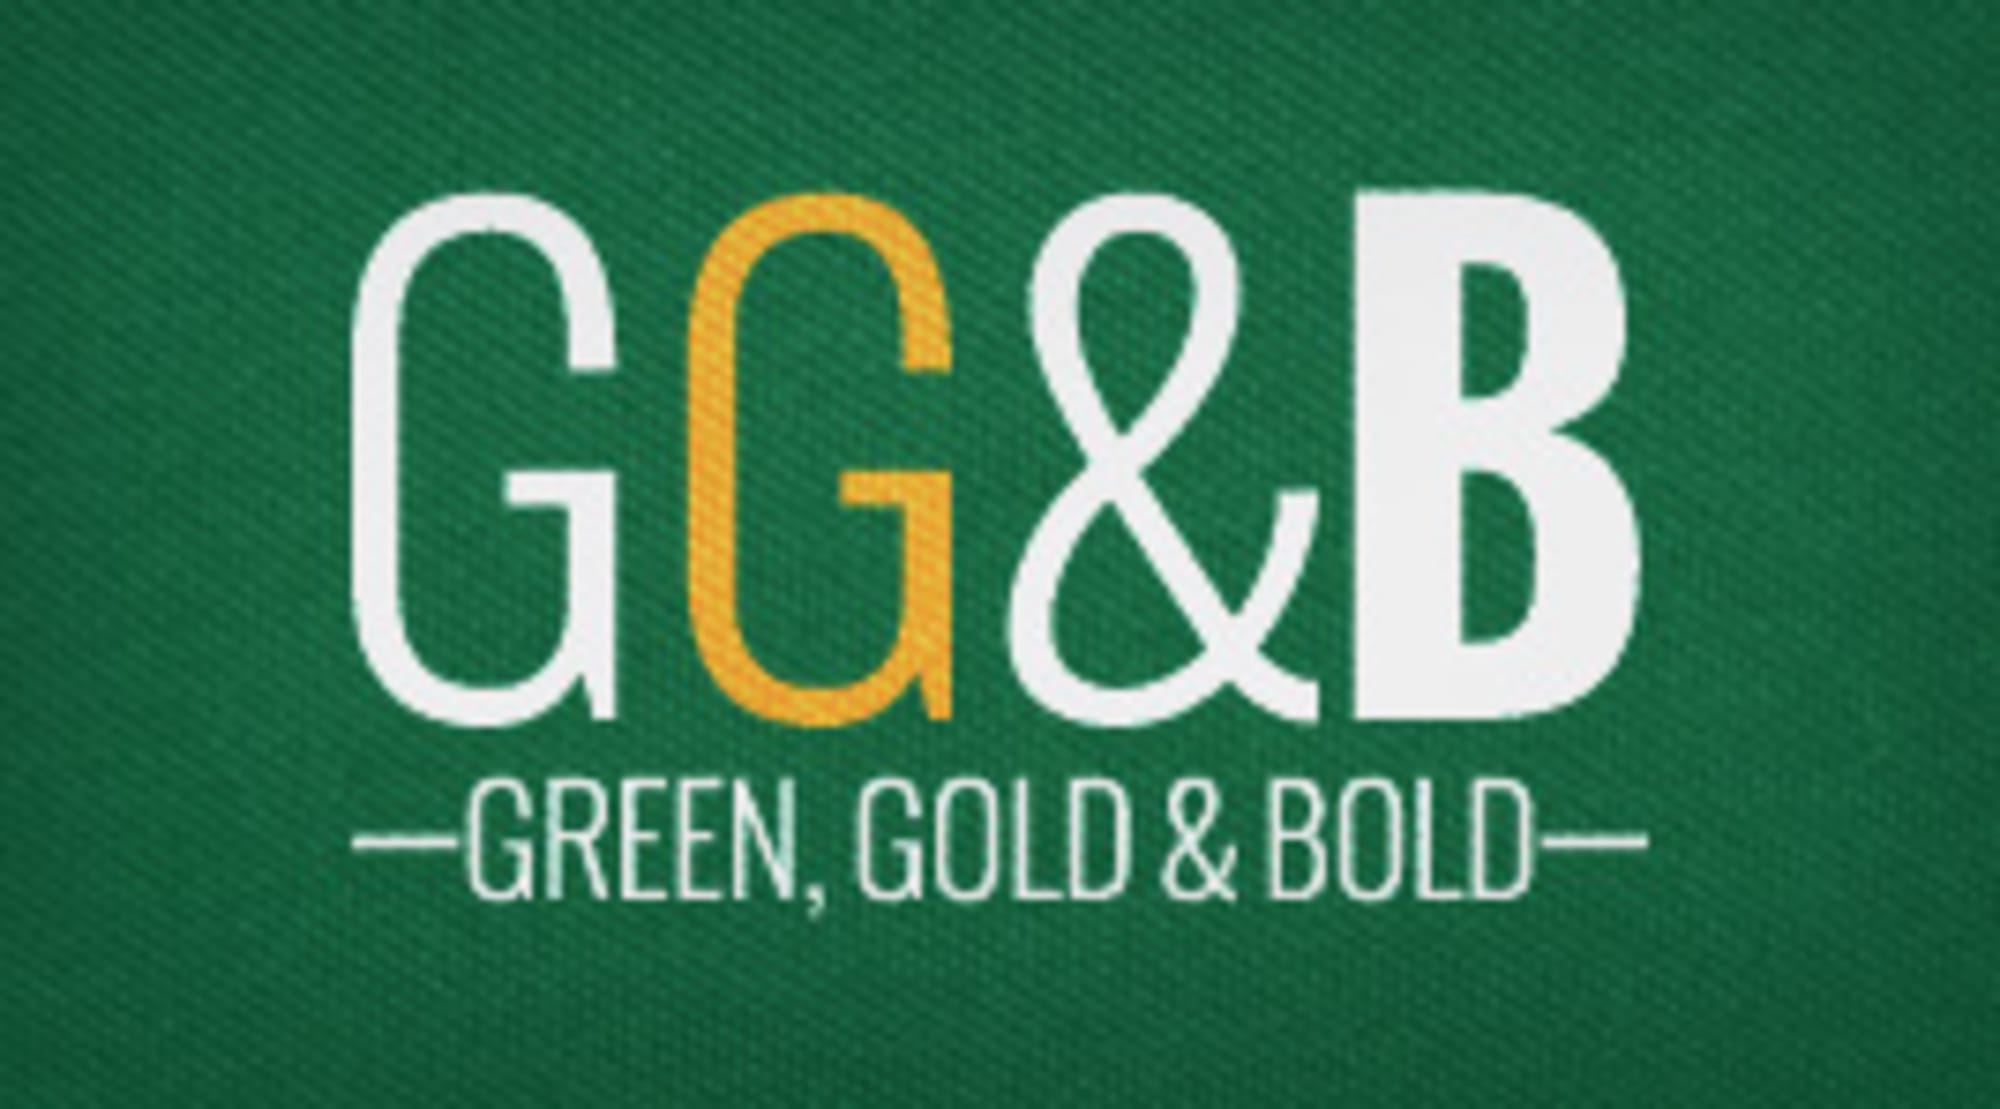 USF vs. UF Student Tickets Now Available - Green, Gold